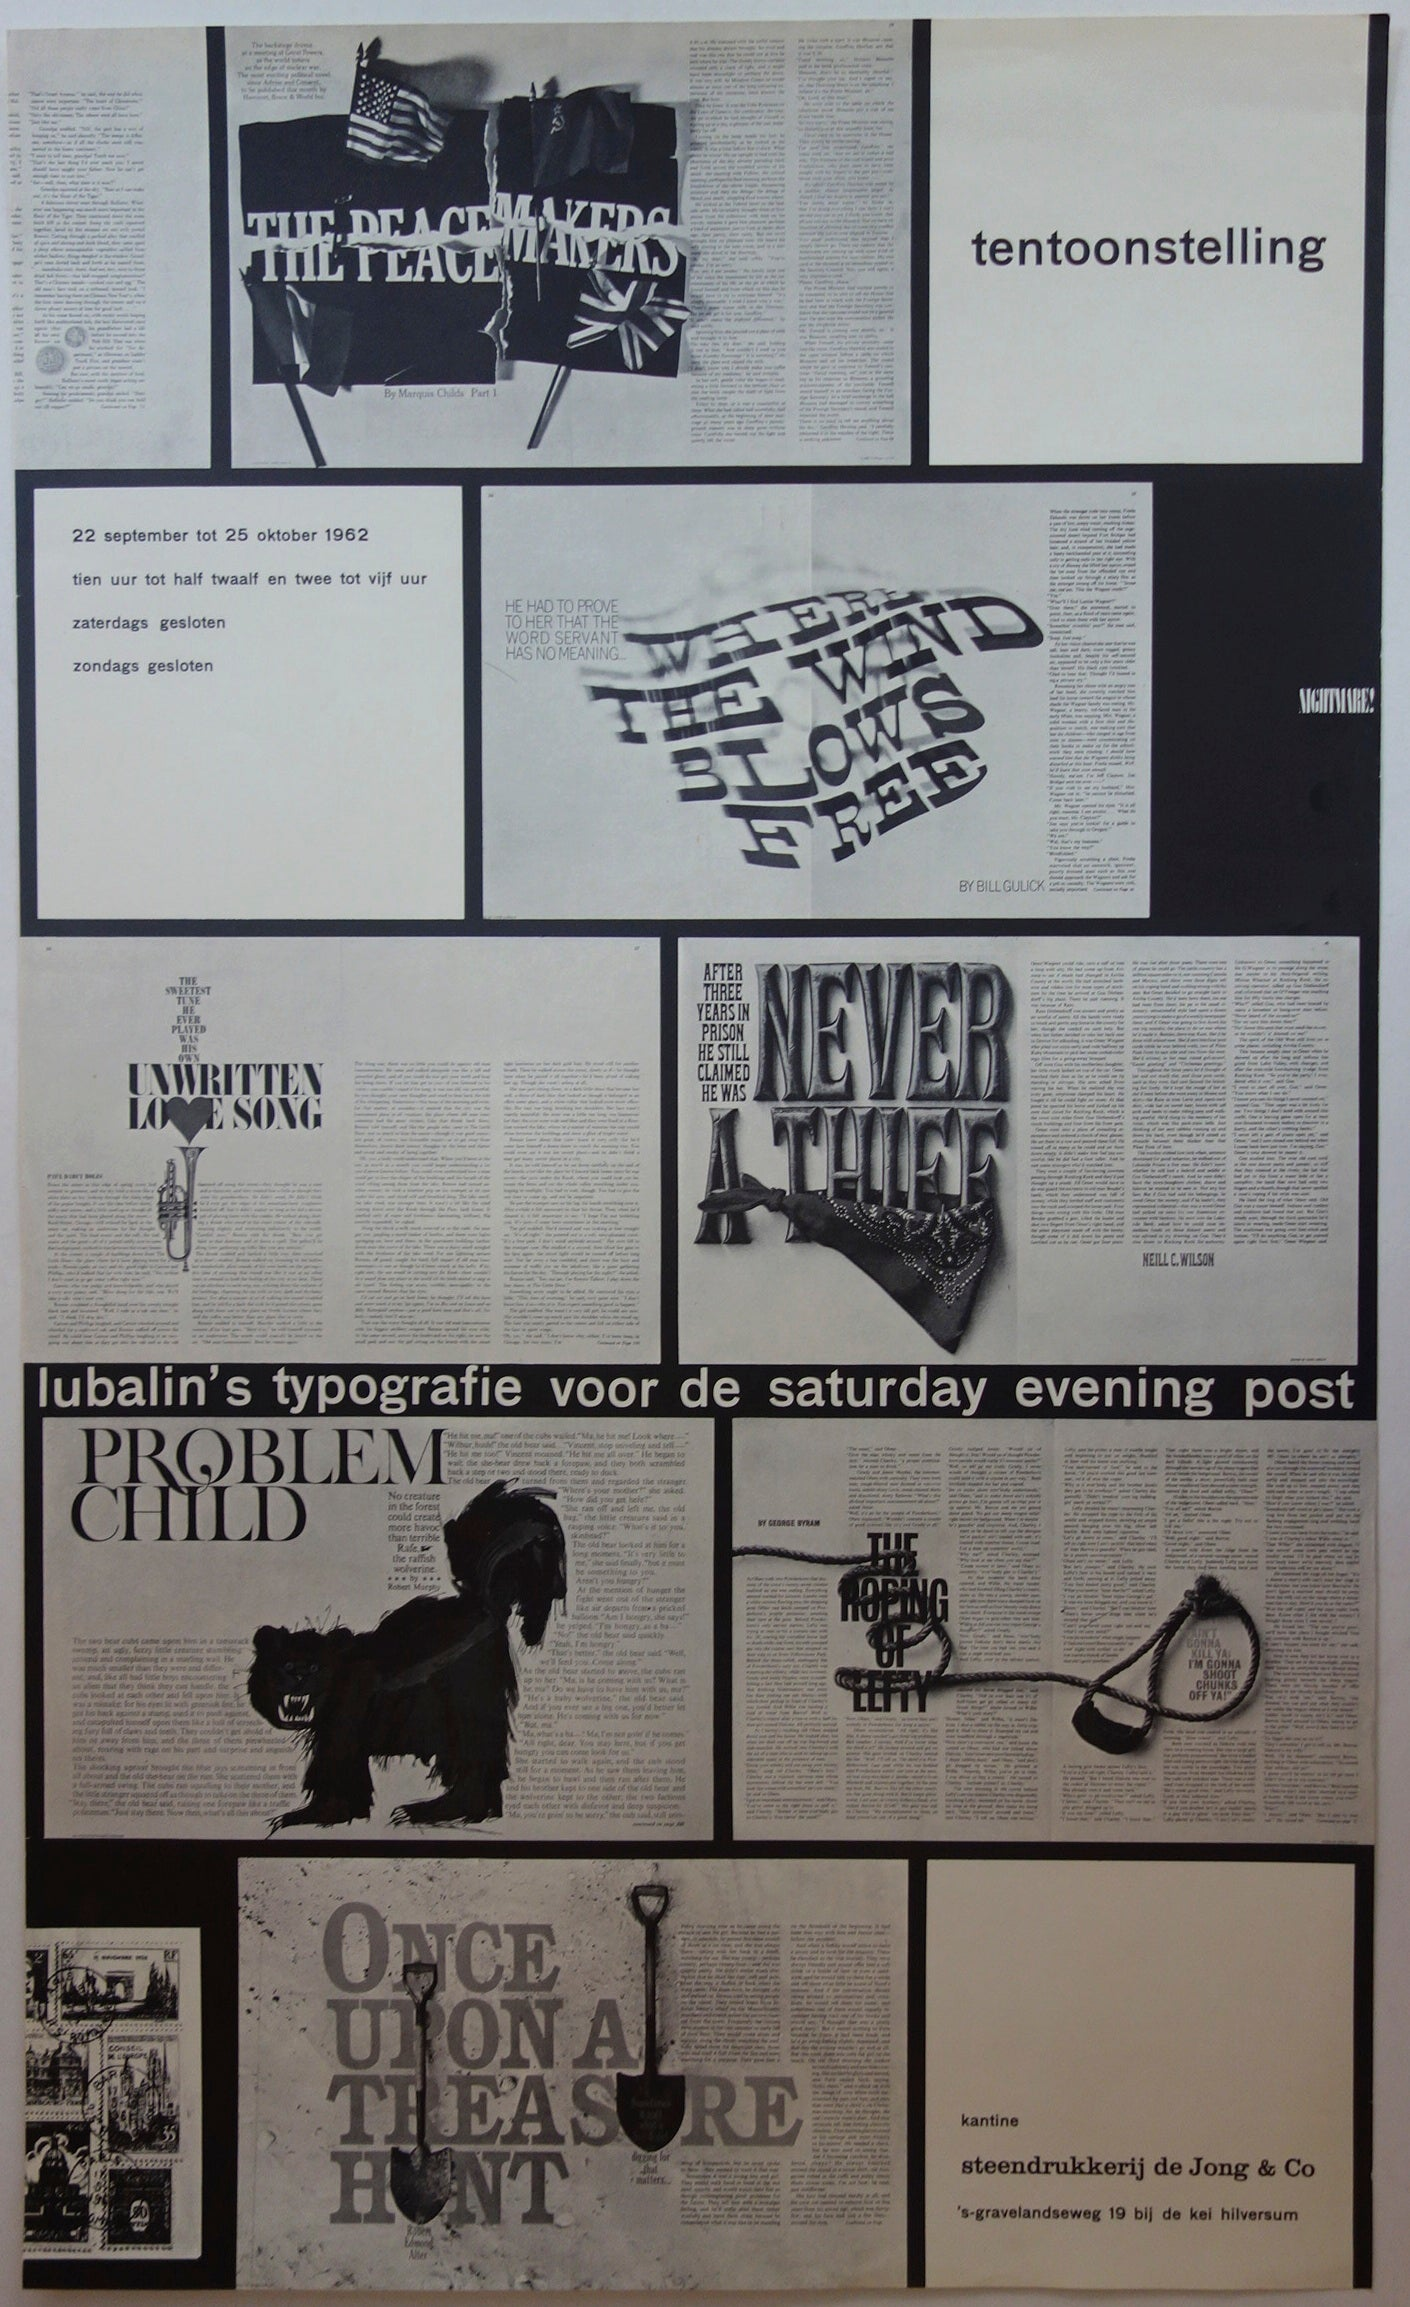 Tentoonstelling: Lubalin's Typografie Voor De Saturday Evening Post